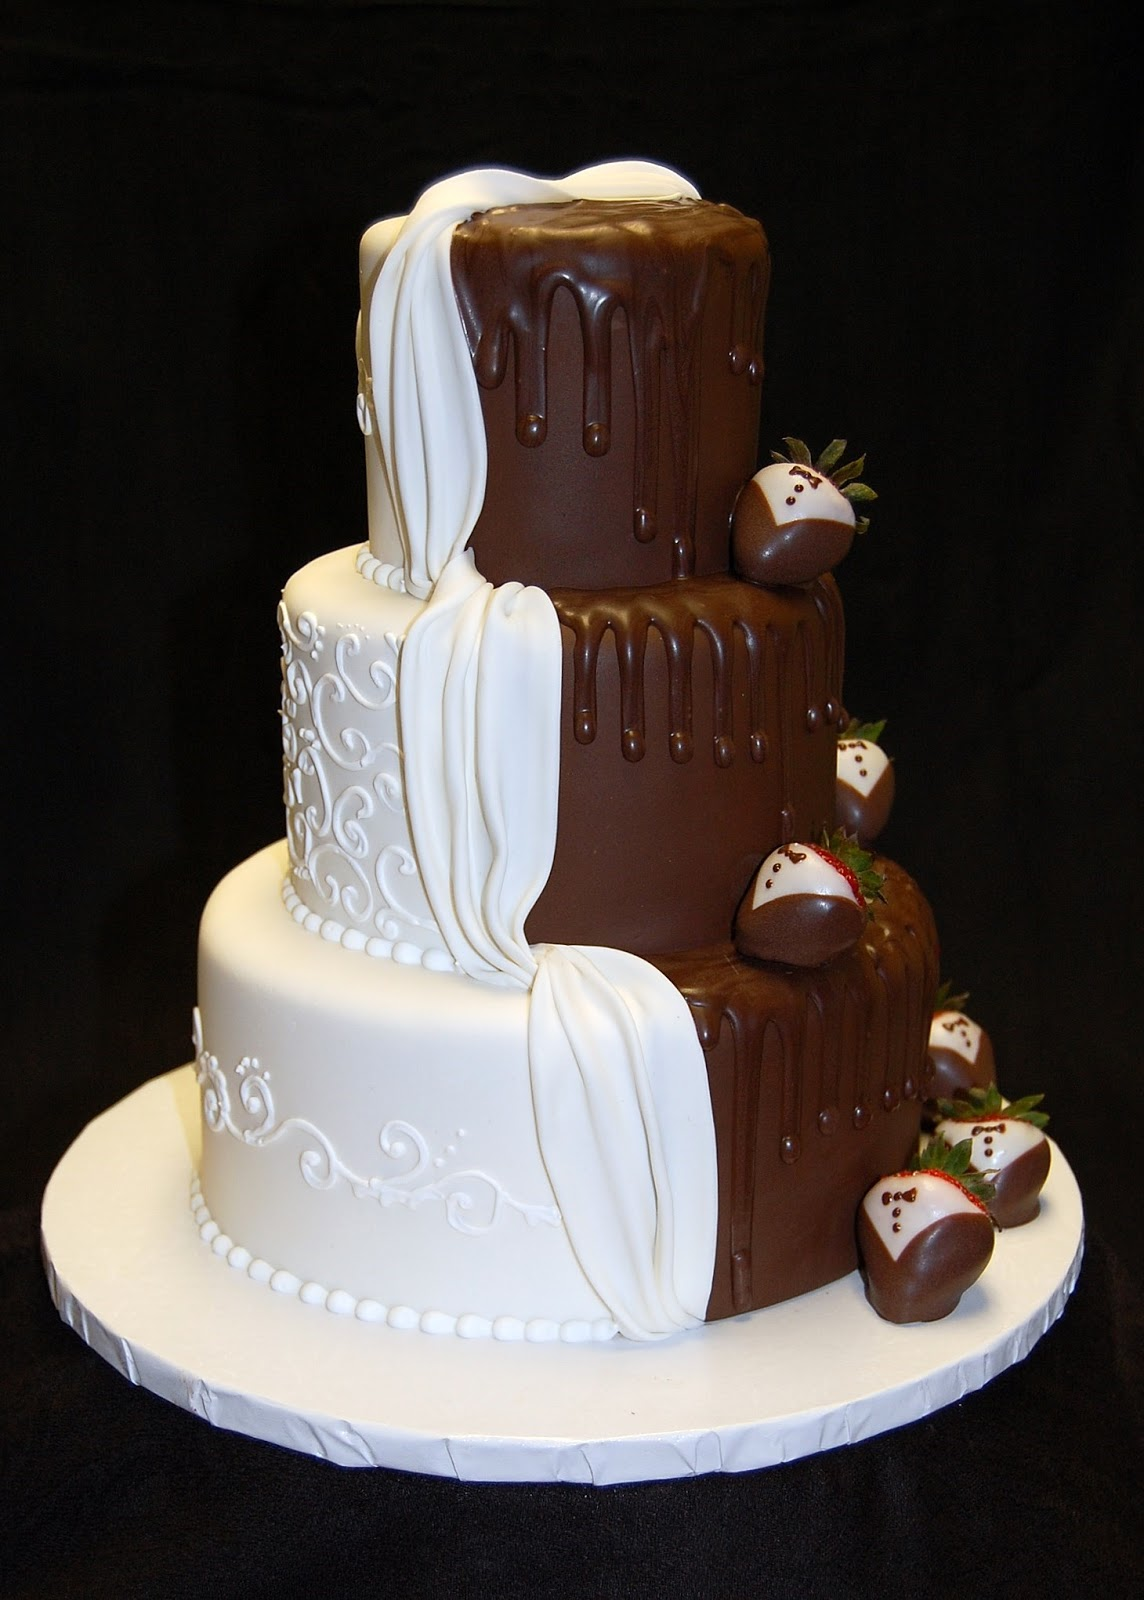 Drea S Dessert Factory His And Hers Wedding Cake